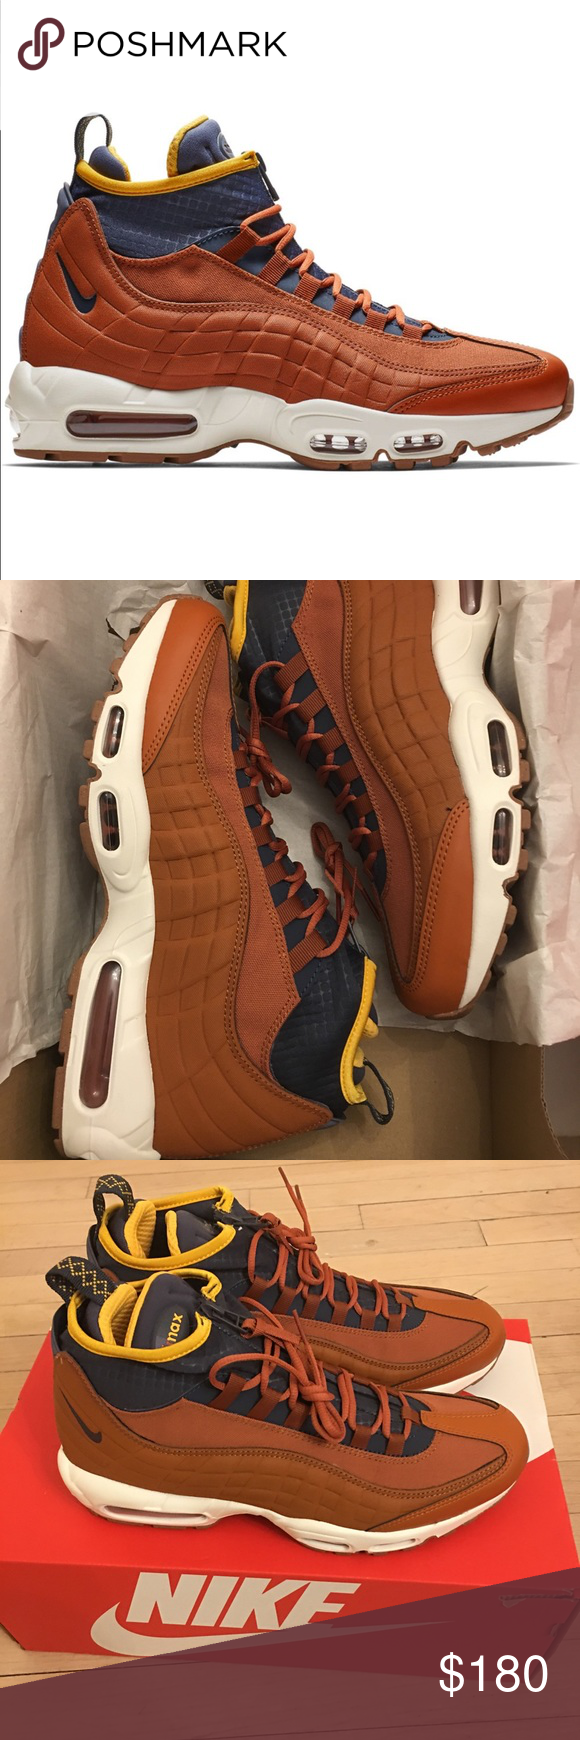 nike air max 95 sneakerboot dark russet